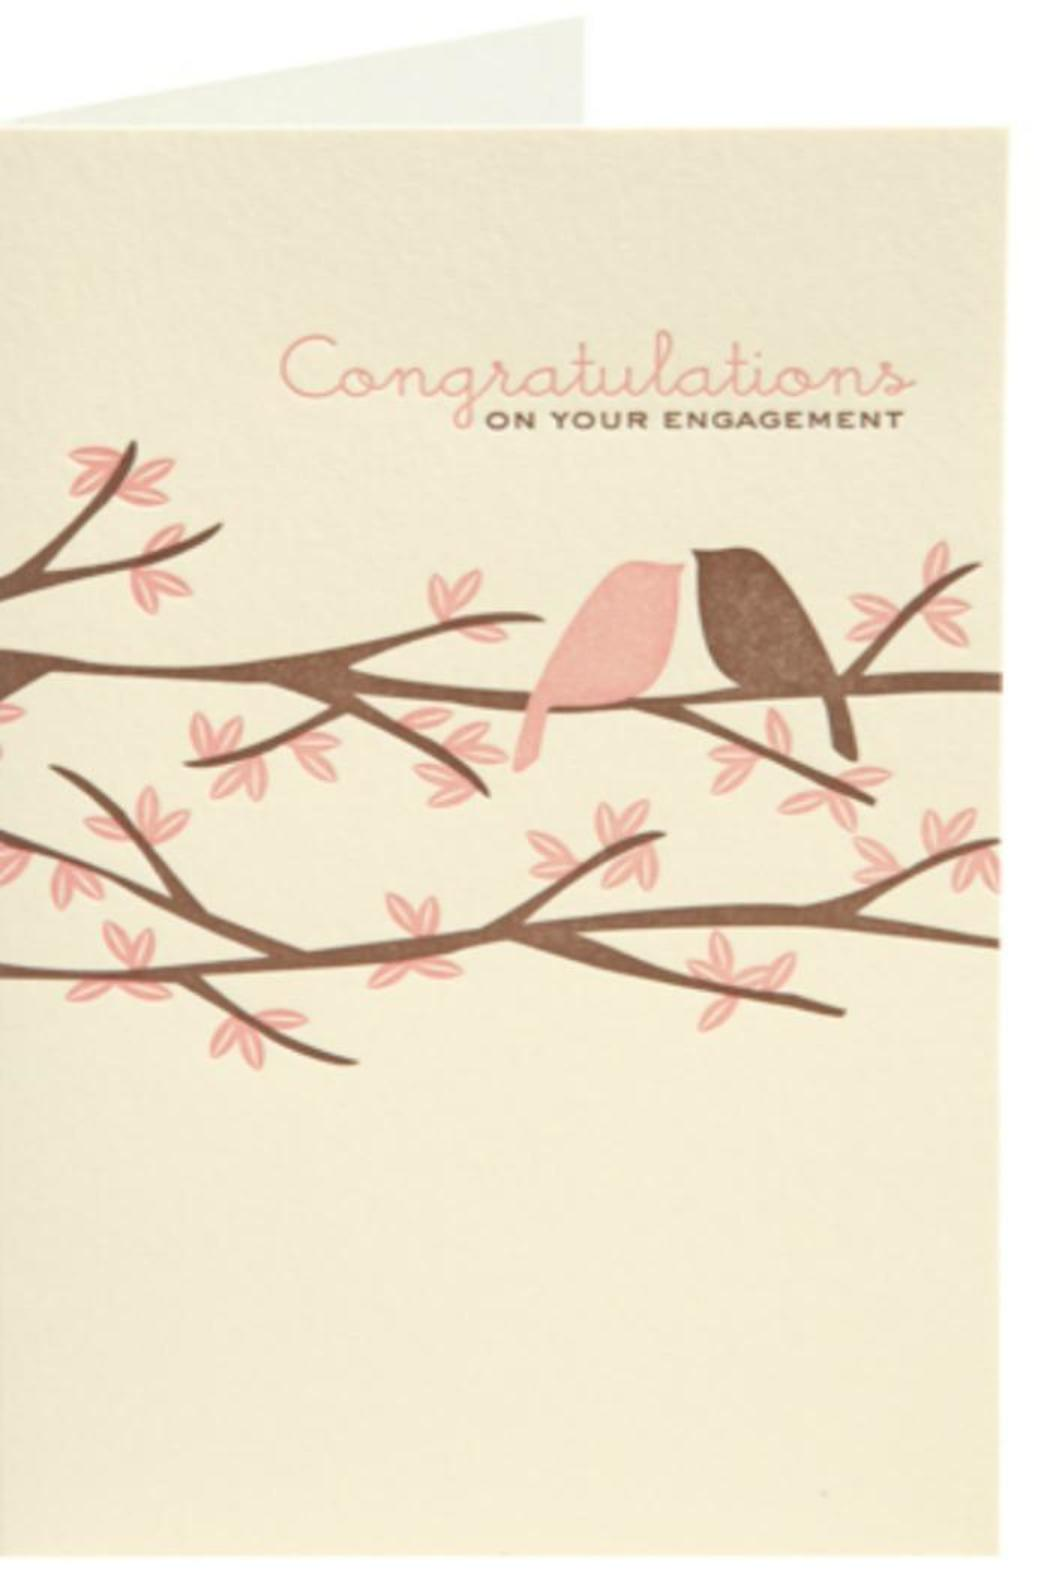 Snow And Graham Engagement Congratulations Card From Orange County